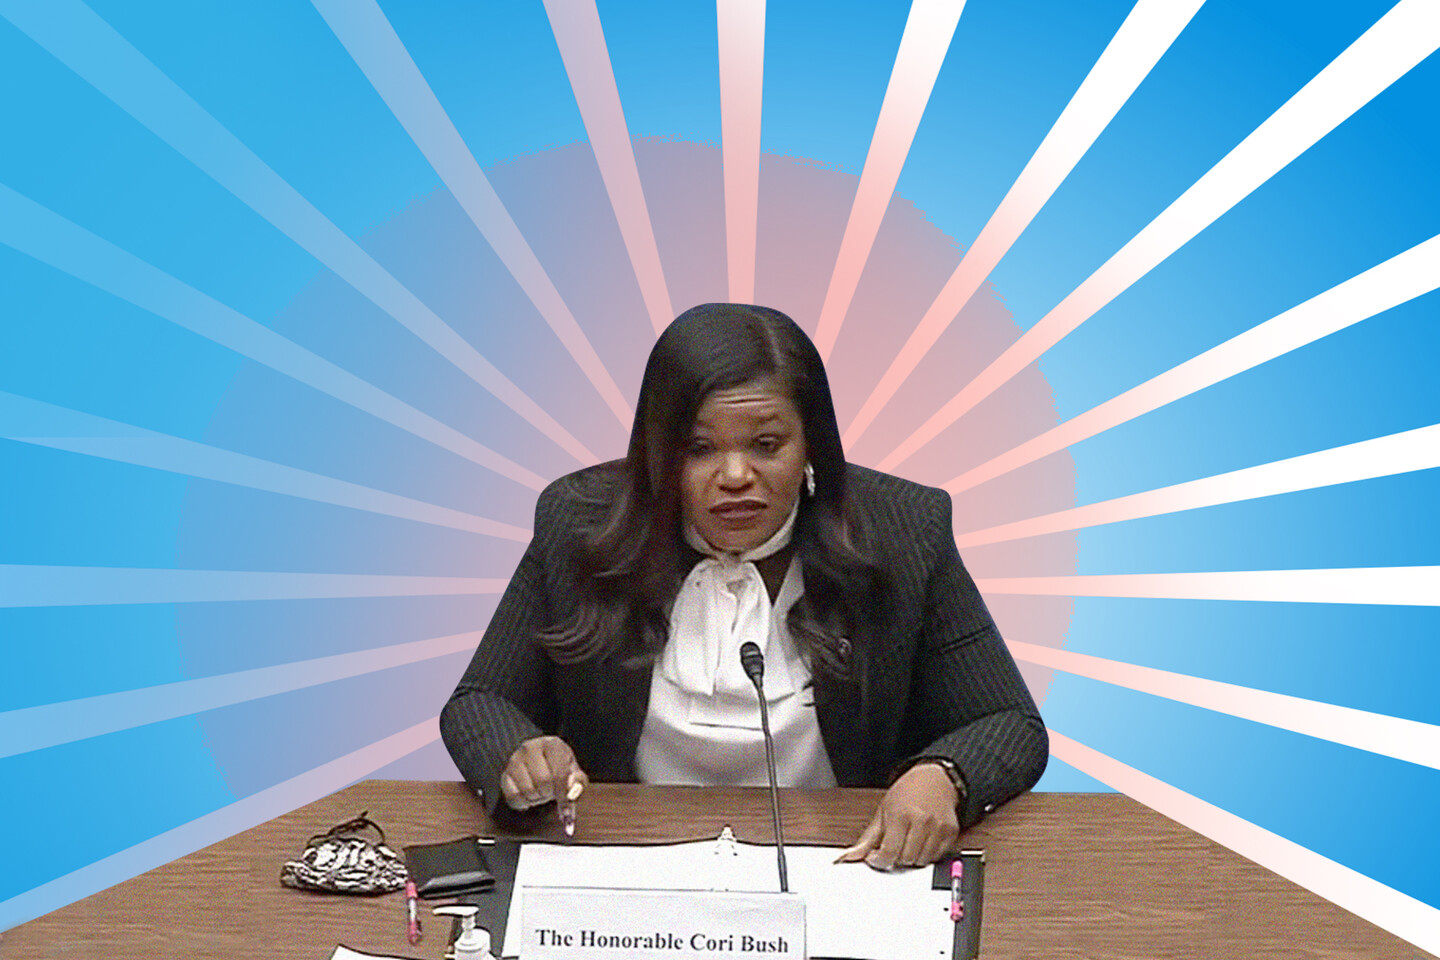 an illustration of Cori Bush, a brownskinned Black woman with long, black hair, sitting at a desk and surrounded by light blue rays